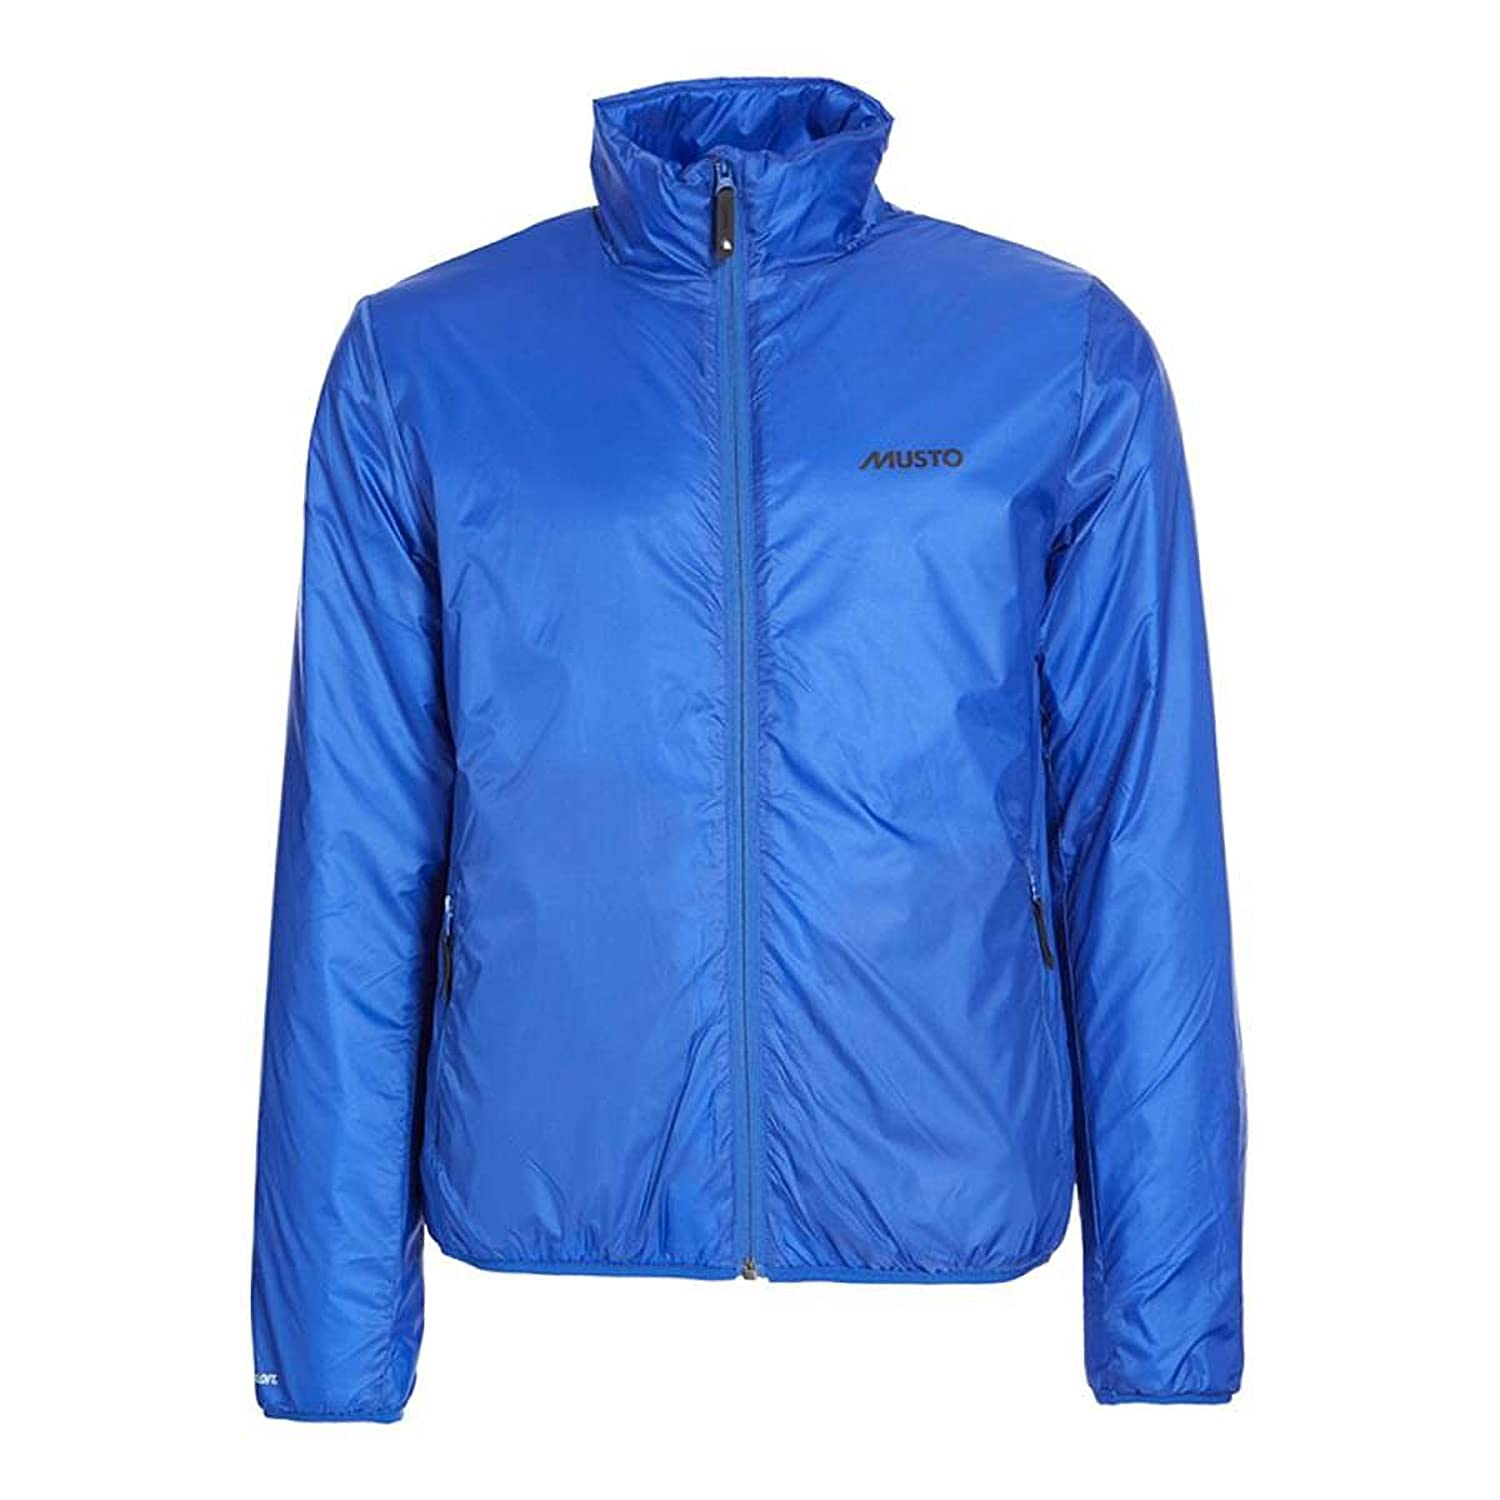 Musto Men's bluee Primaloft Waterproof Jacket